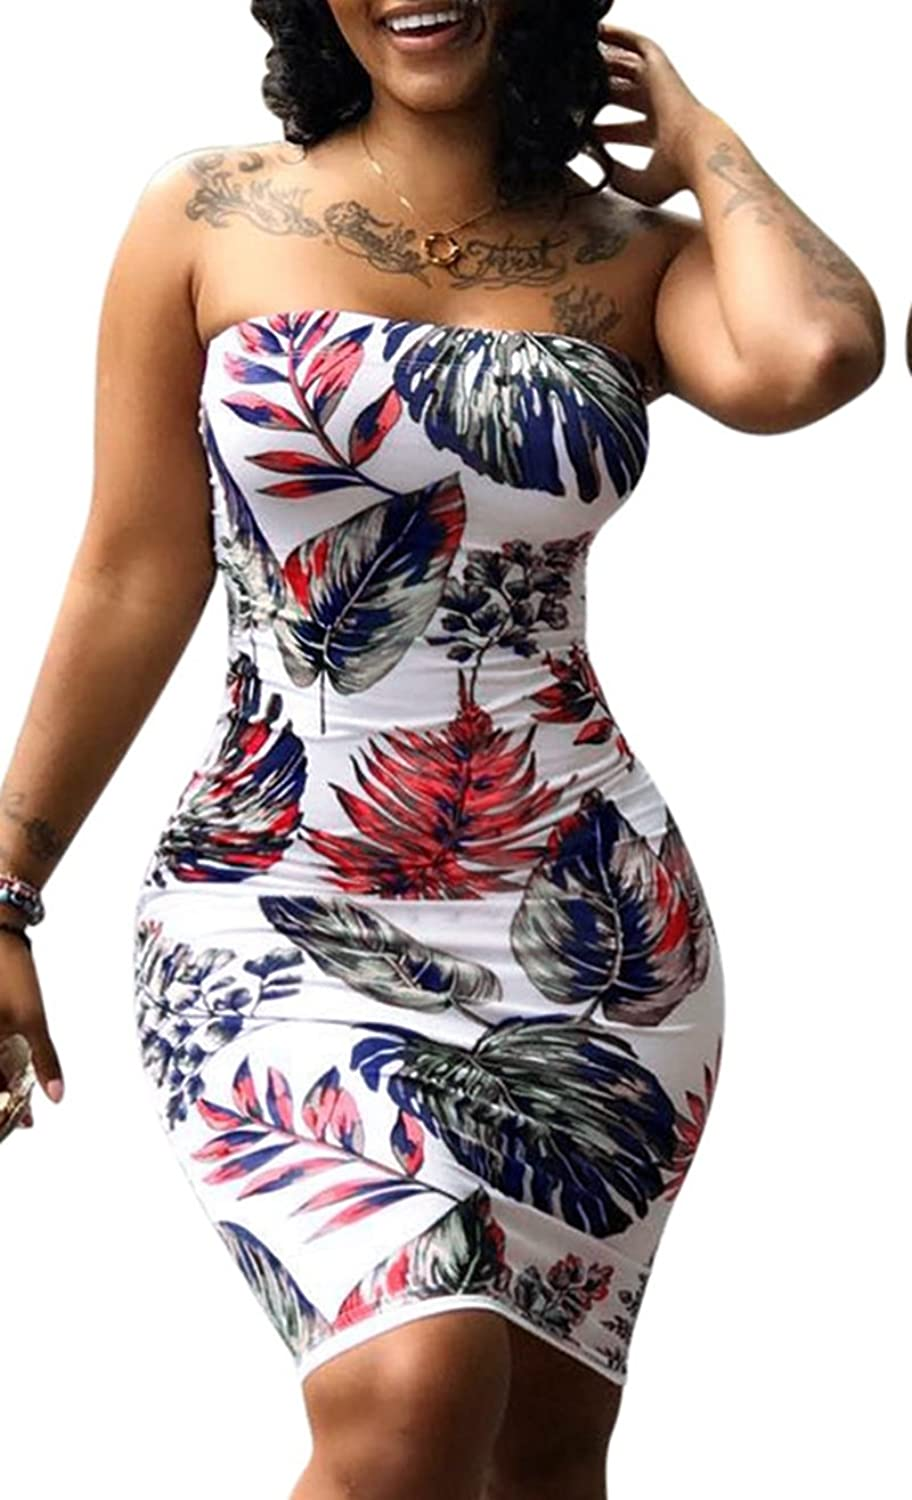 cdca298eaaf1 Bodycon Dress, Tube tops, floral palm leaf pattern printed, slim bodycon  figure, pull on closure, plus size. Smock chest sun dress